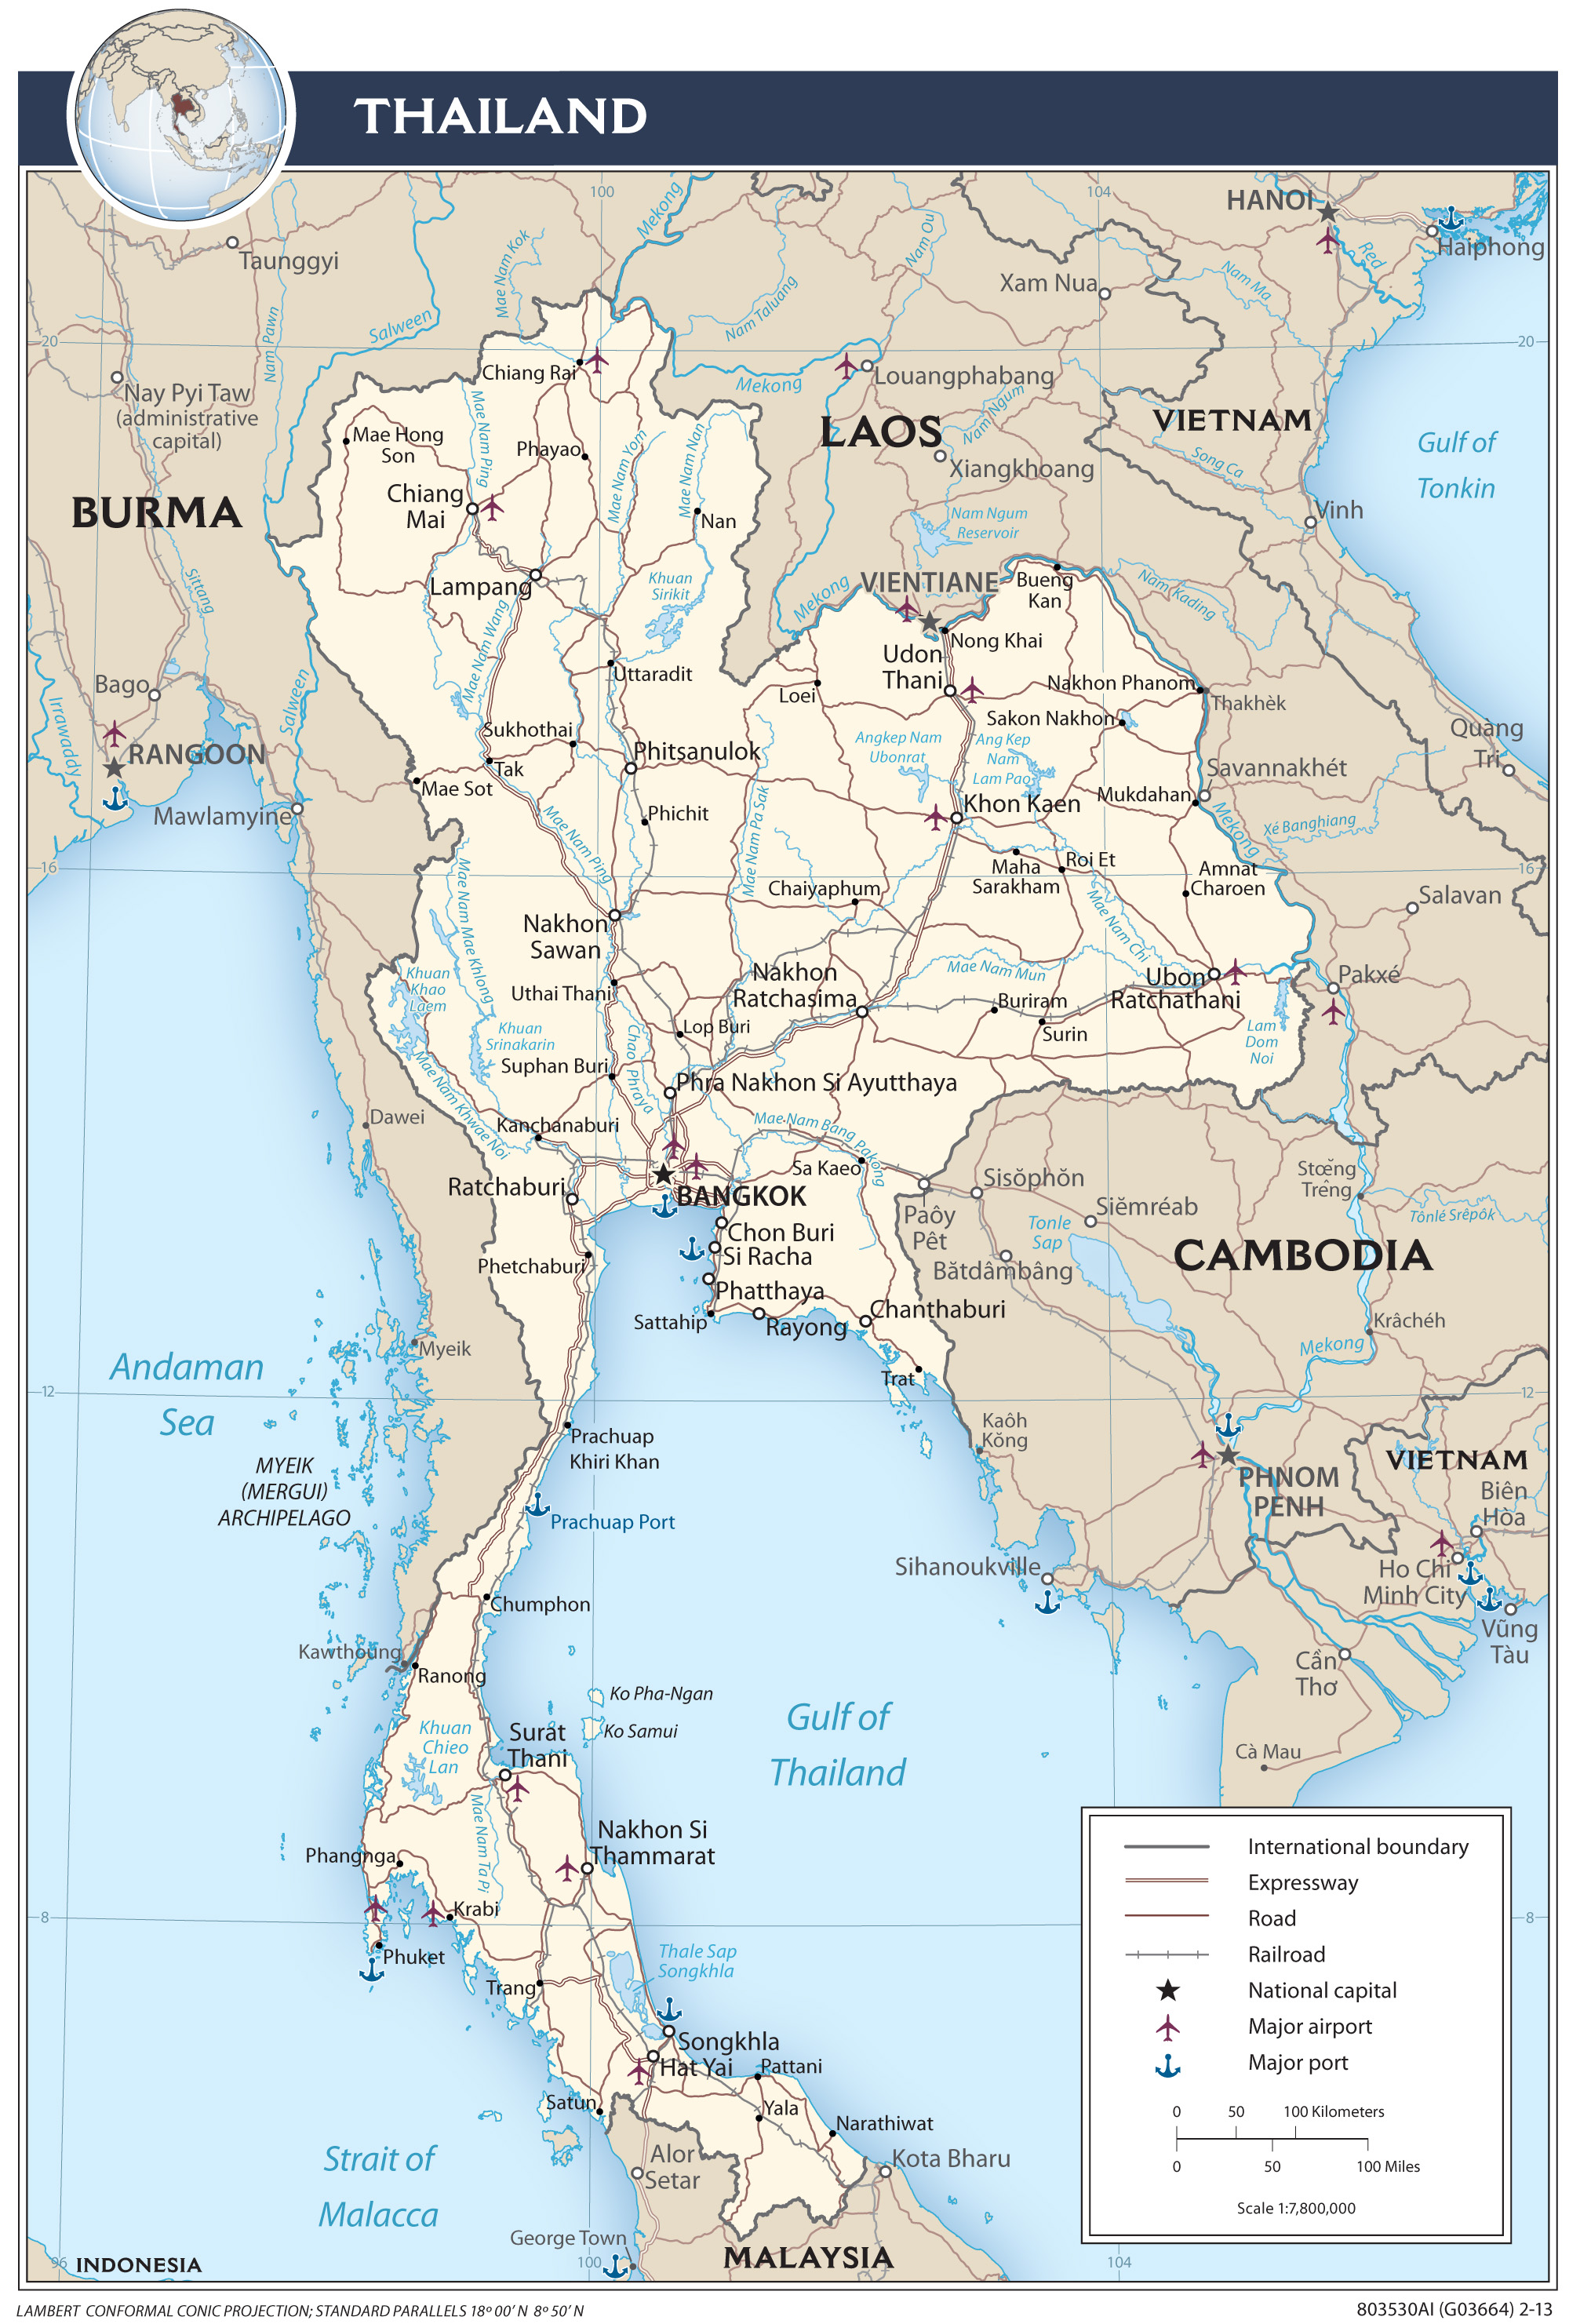 FileThailandmapCIAenjpg Wikimedia Commons